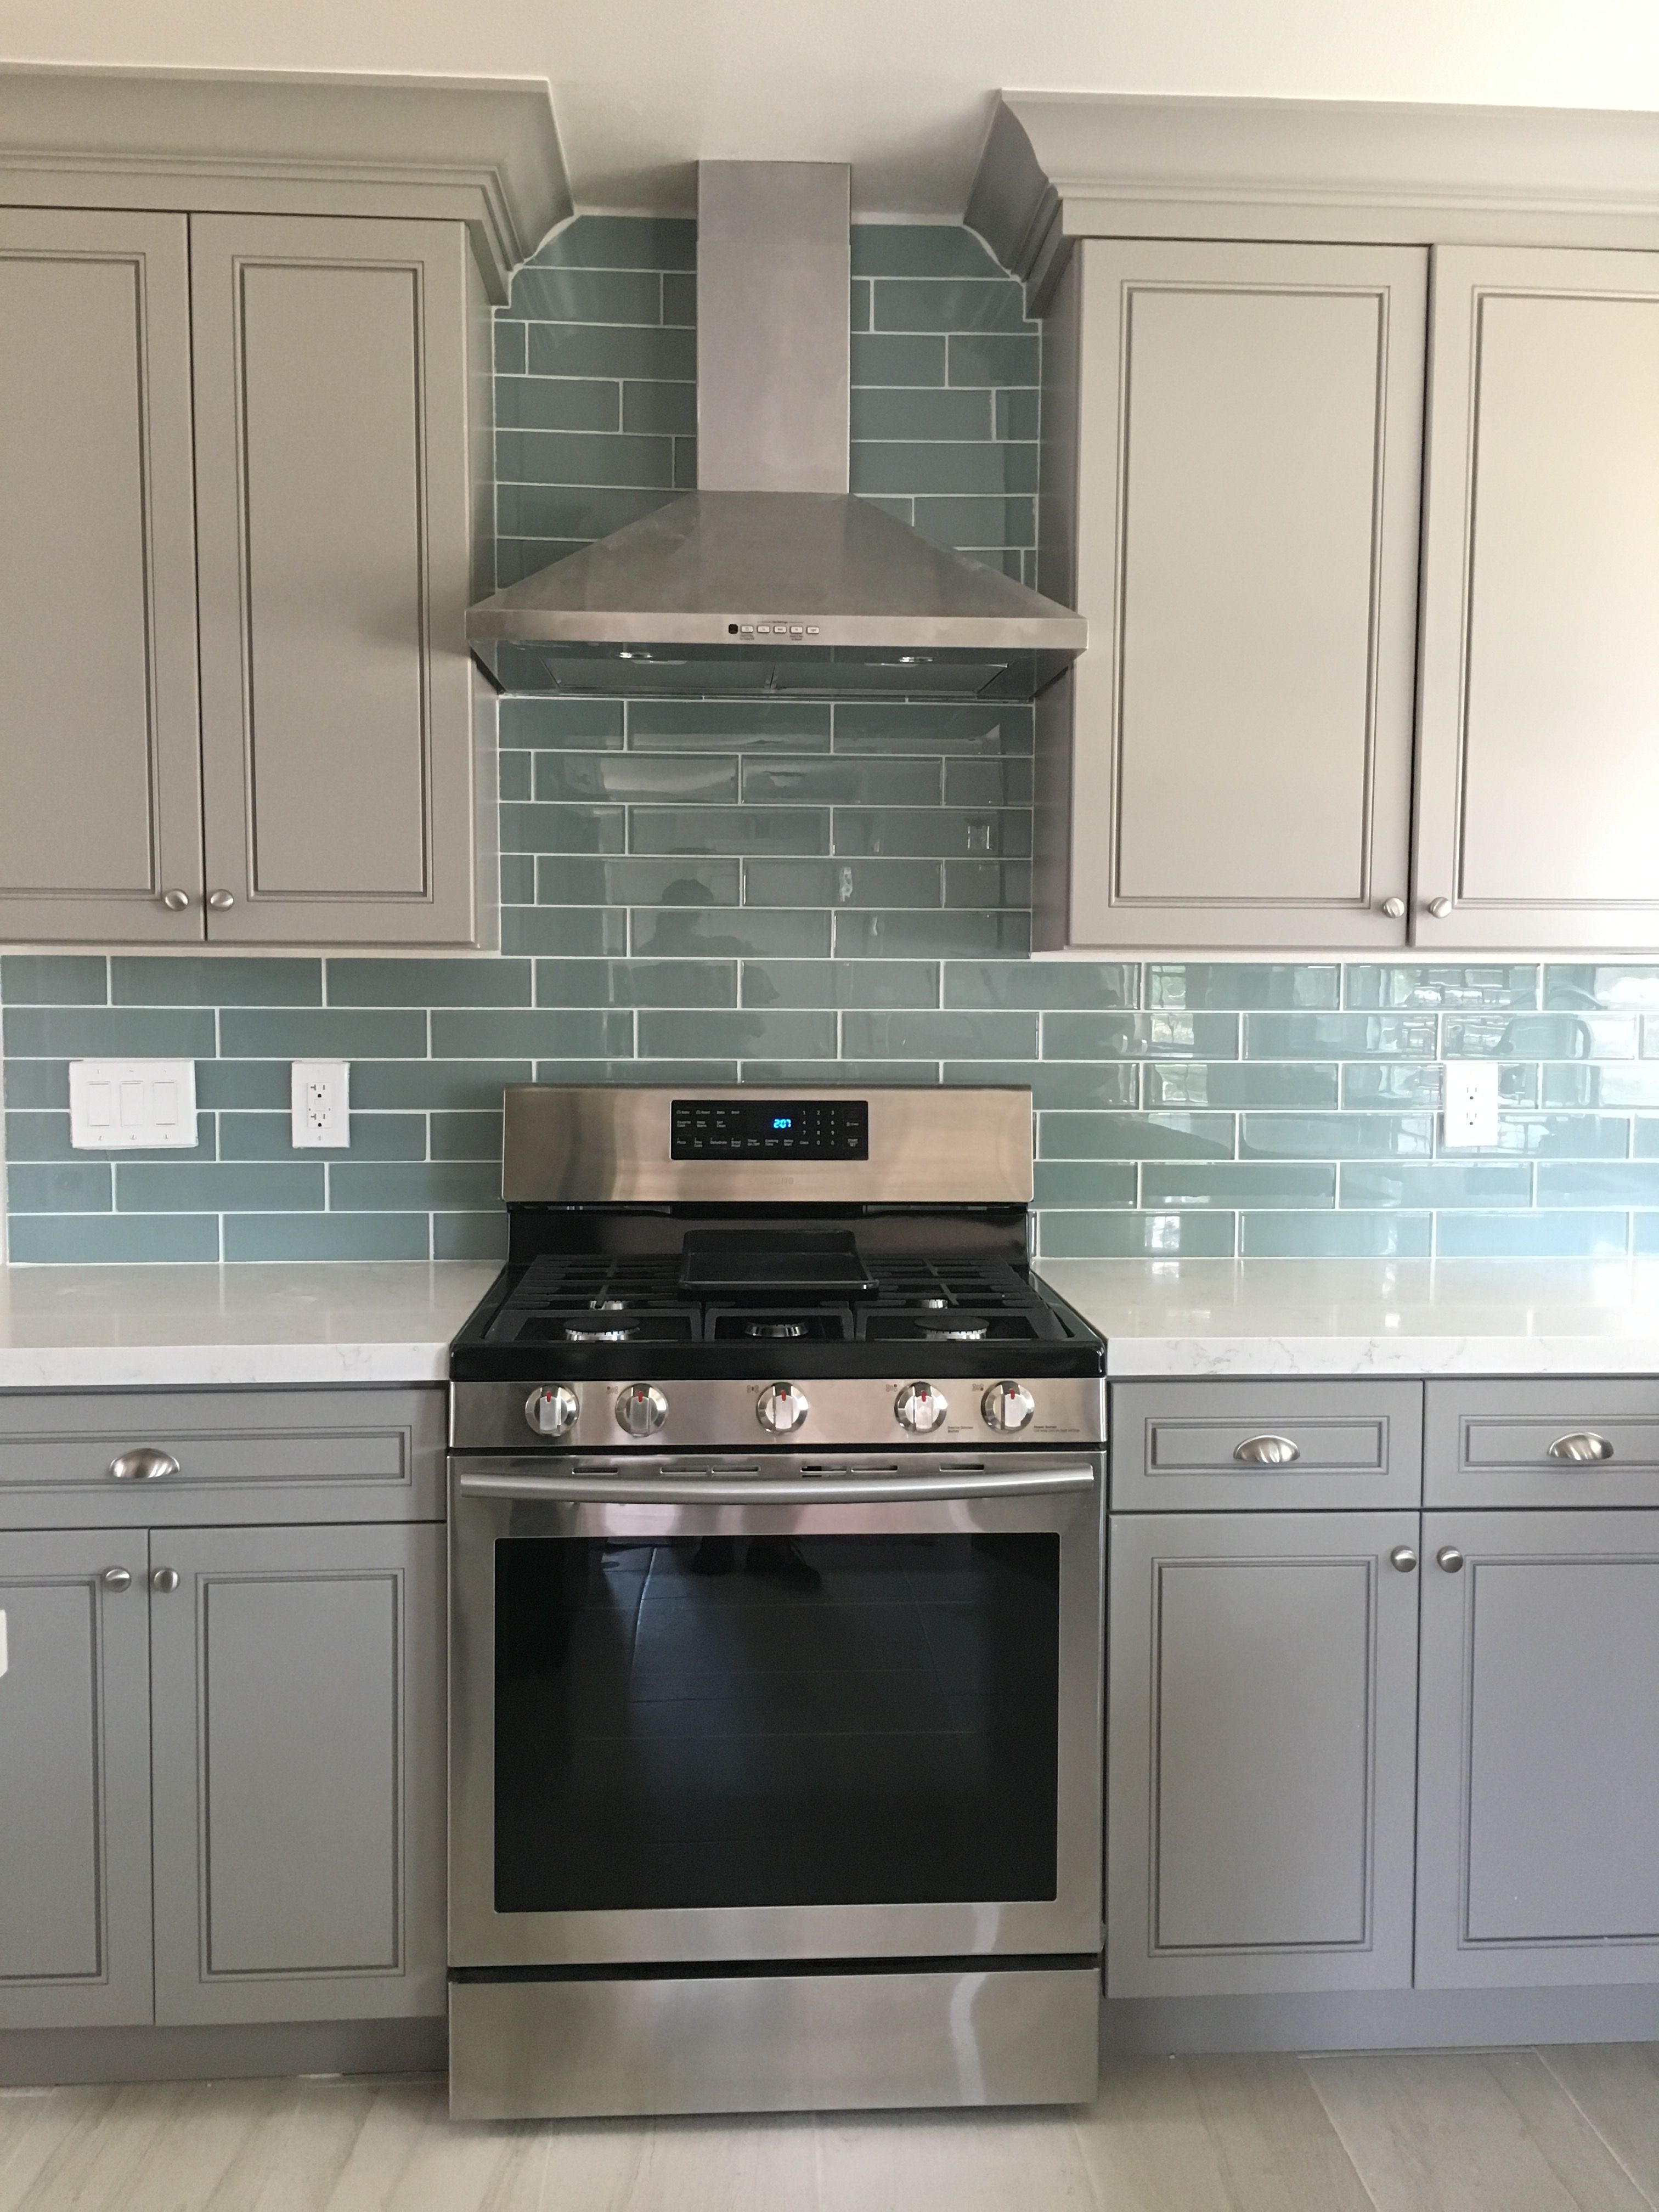 Blue Glass Tile Backsplash With Gray Cabinets And White Quartz